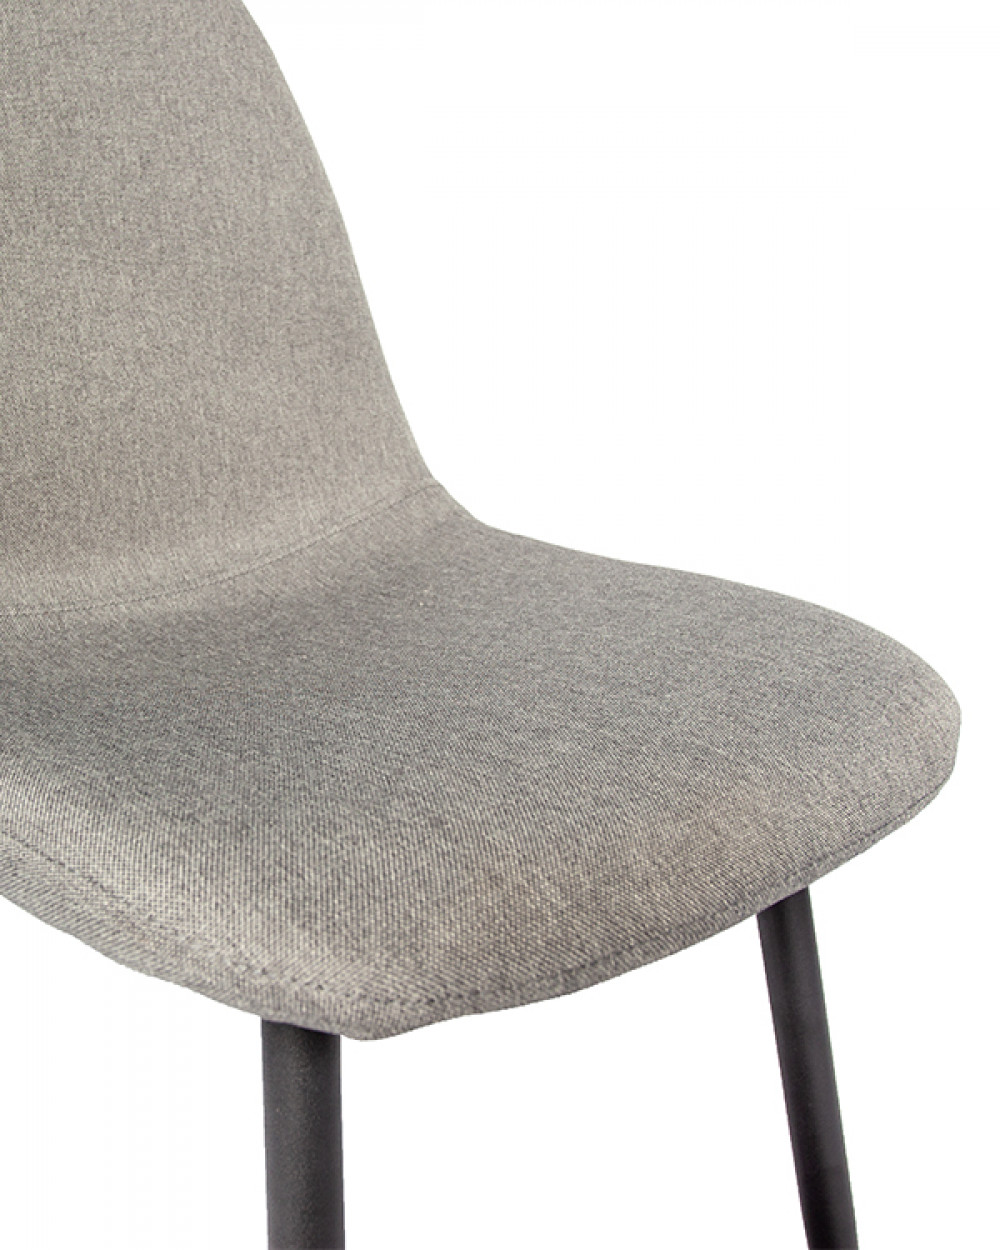 Oslo Dining Chair (Fabric)